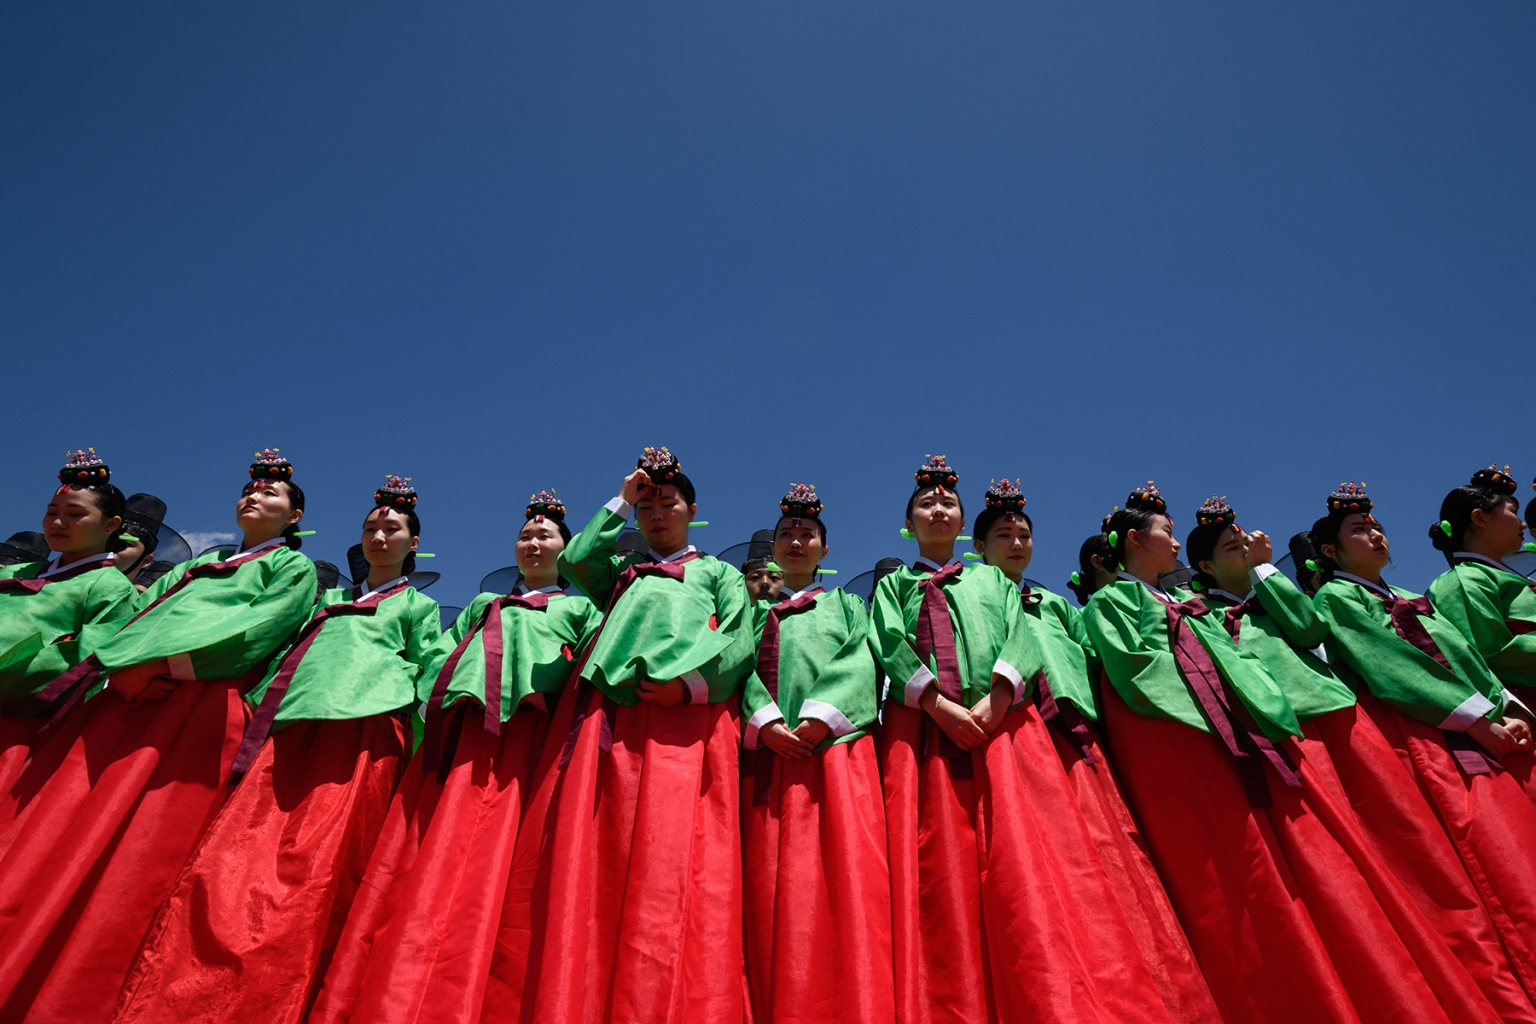 Young women wearing traditional hanbok dress line up for a group photo as they attend a traditional Coming-of-Age Day ceremony to mark adulthood at Namsan hanok village in Seoul on May 20. ED JONES/AFP/Getty Images